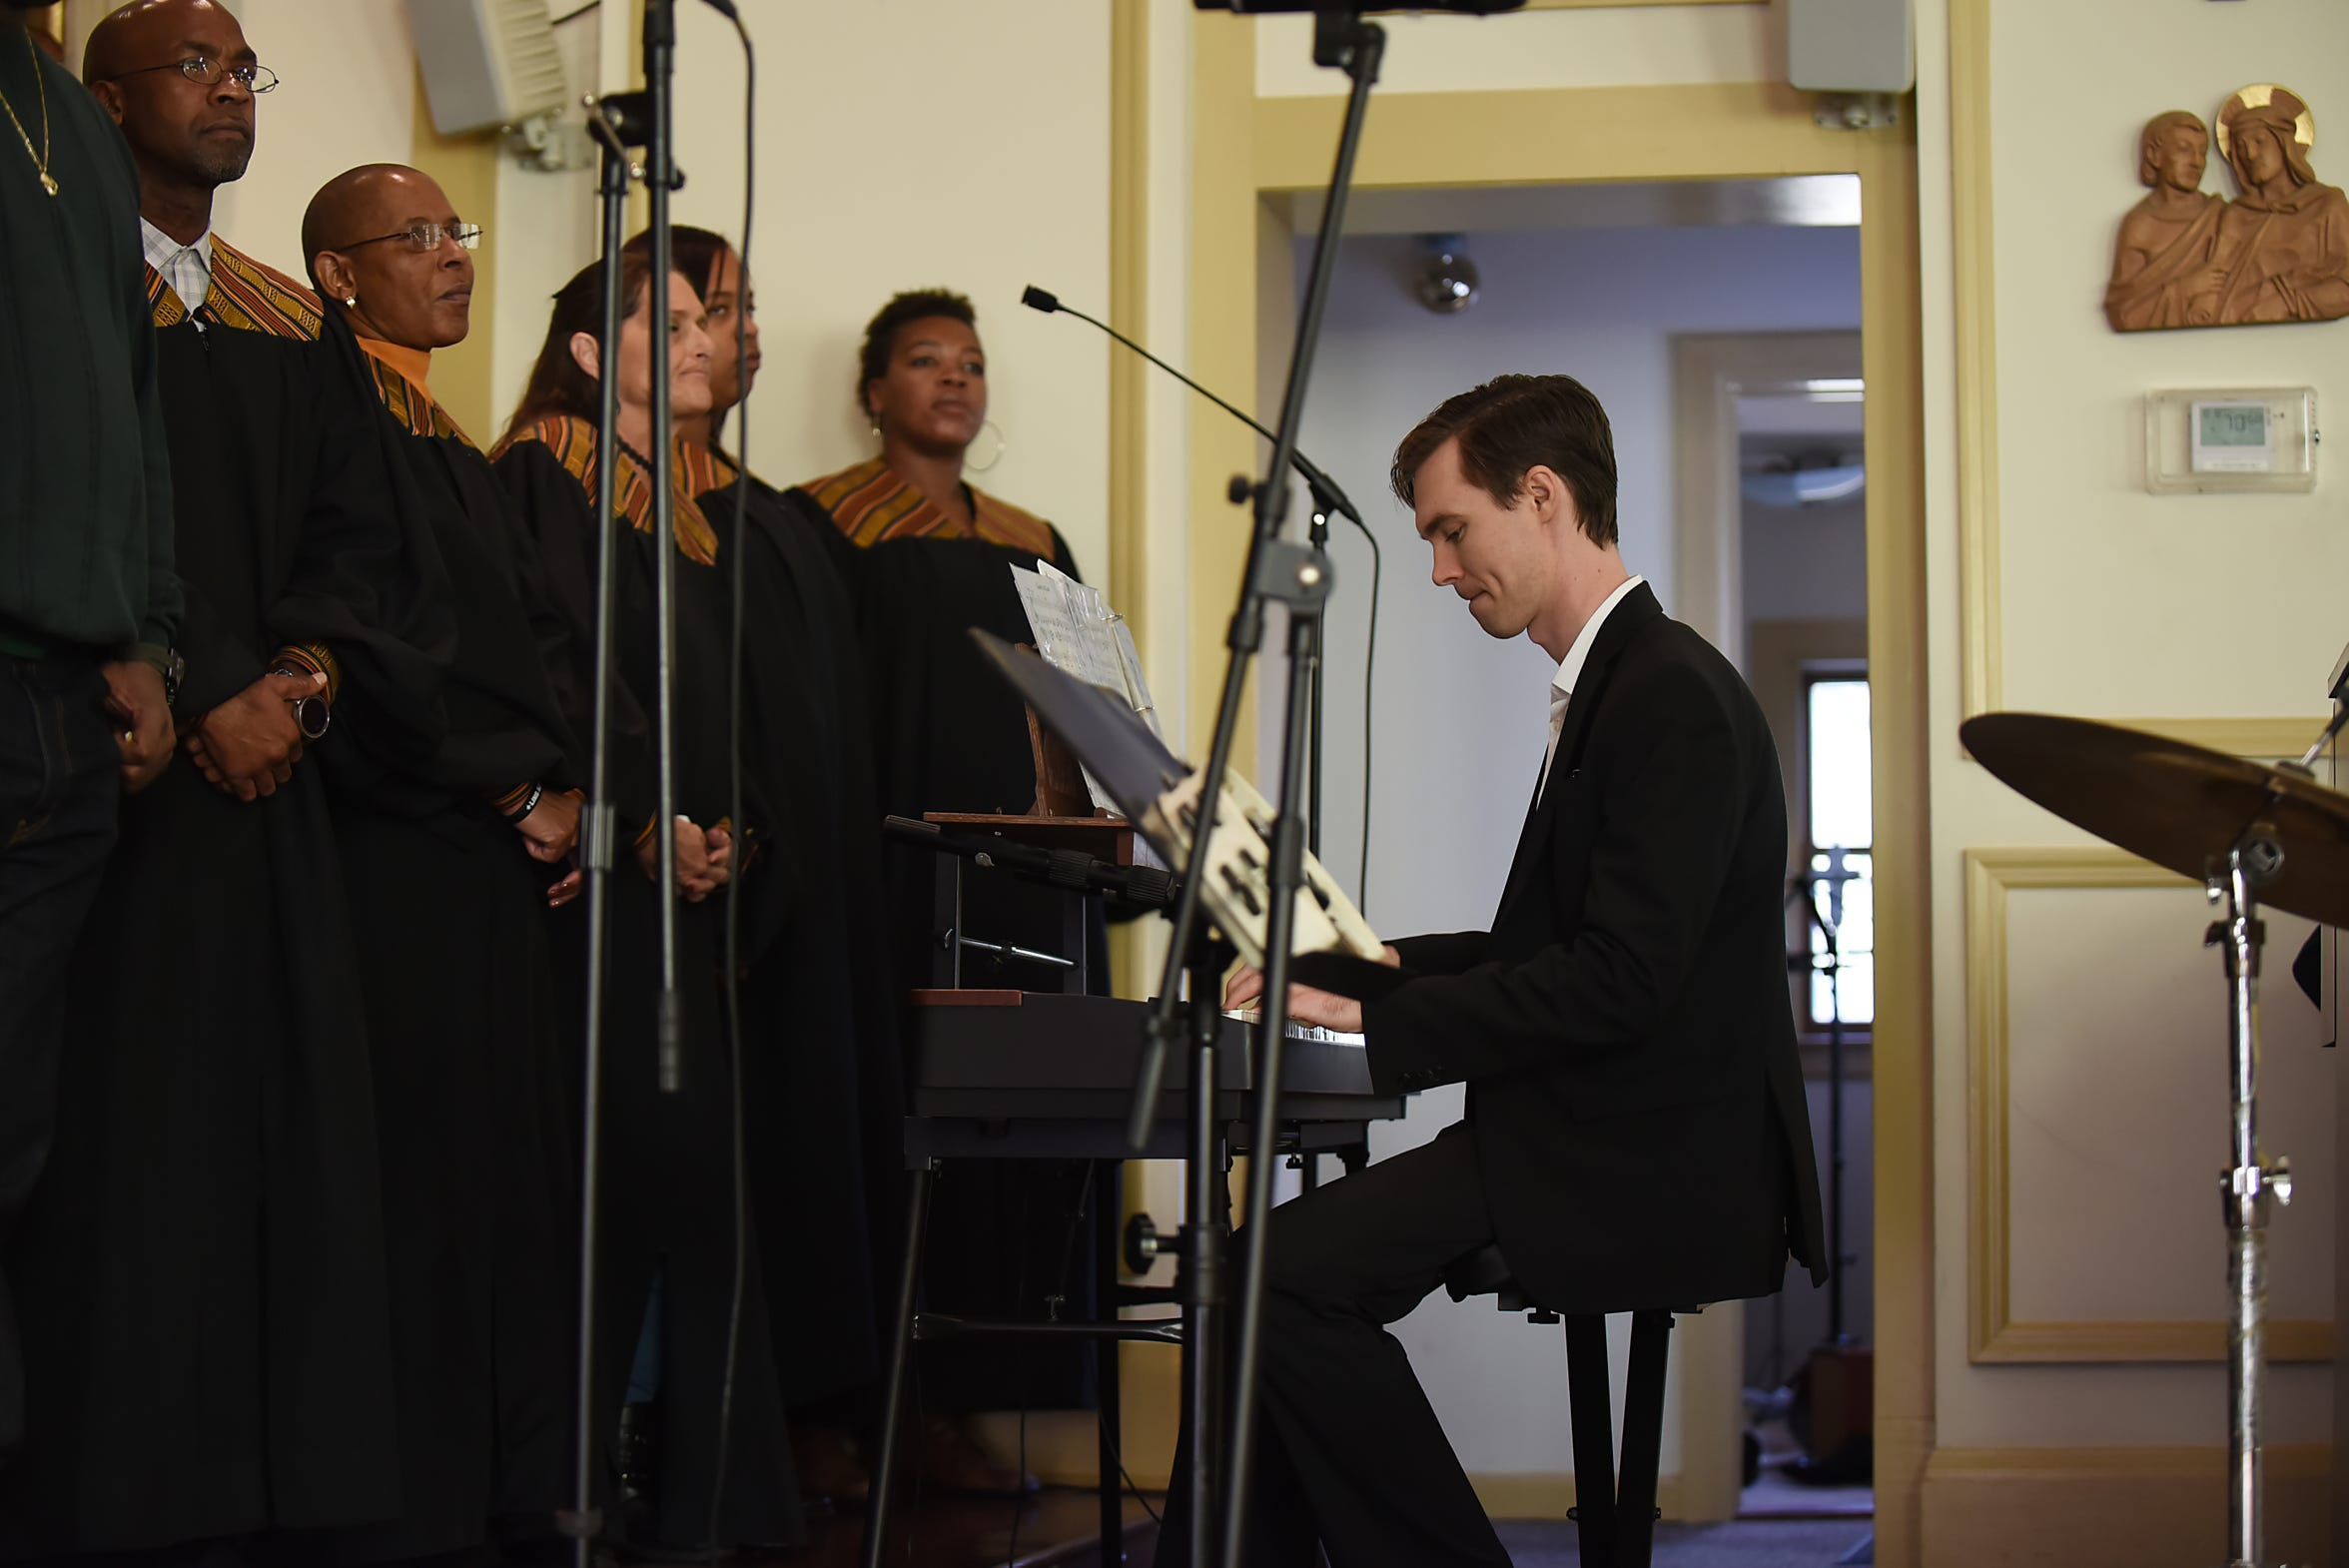 Jordan Piper, musical director for the Straight & Narrow Gospel Choir, during a performance at St. Joseph's Roman Catholic Church in Lincoln Park on Sunday, Oct. 14, 2018.